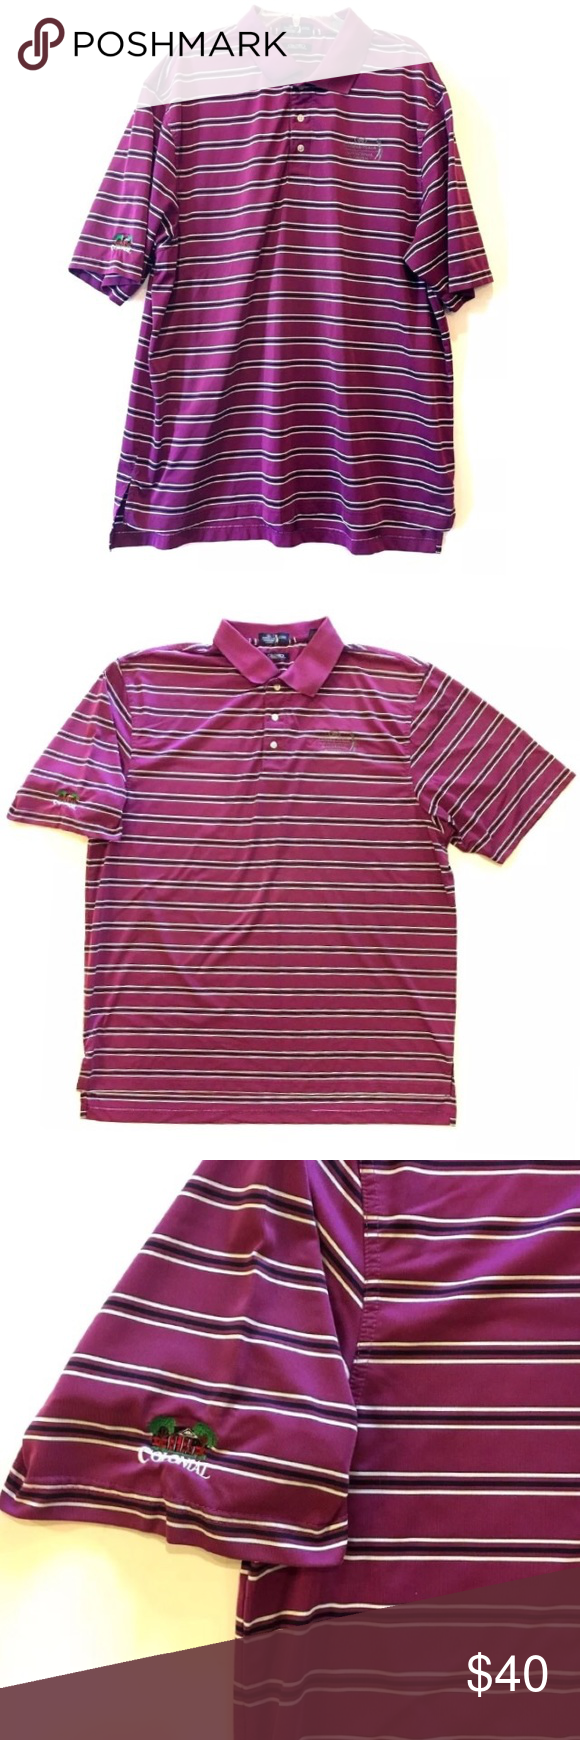 Crowne Plaza Invitational Colonial Polo Shirt Crowne Plaza